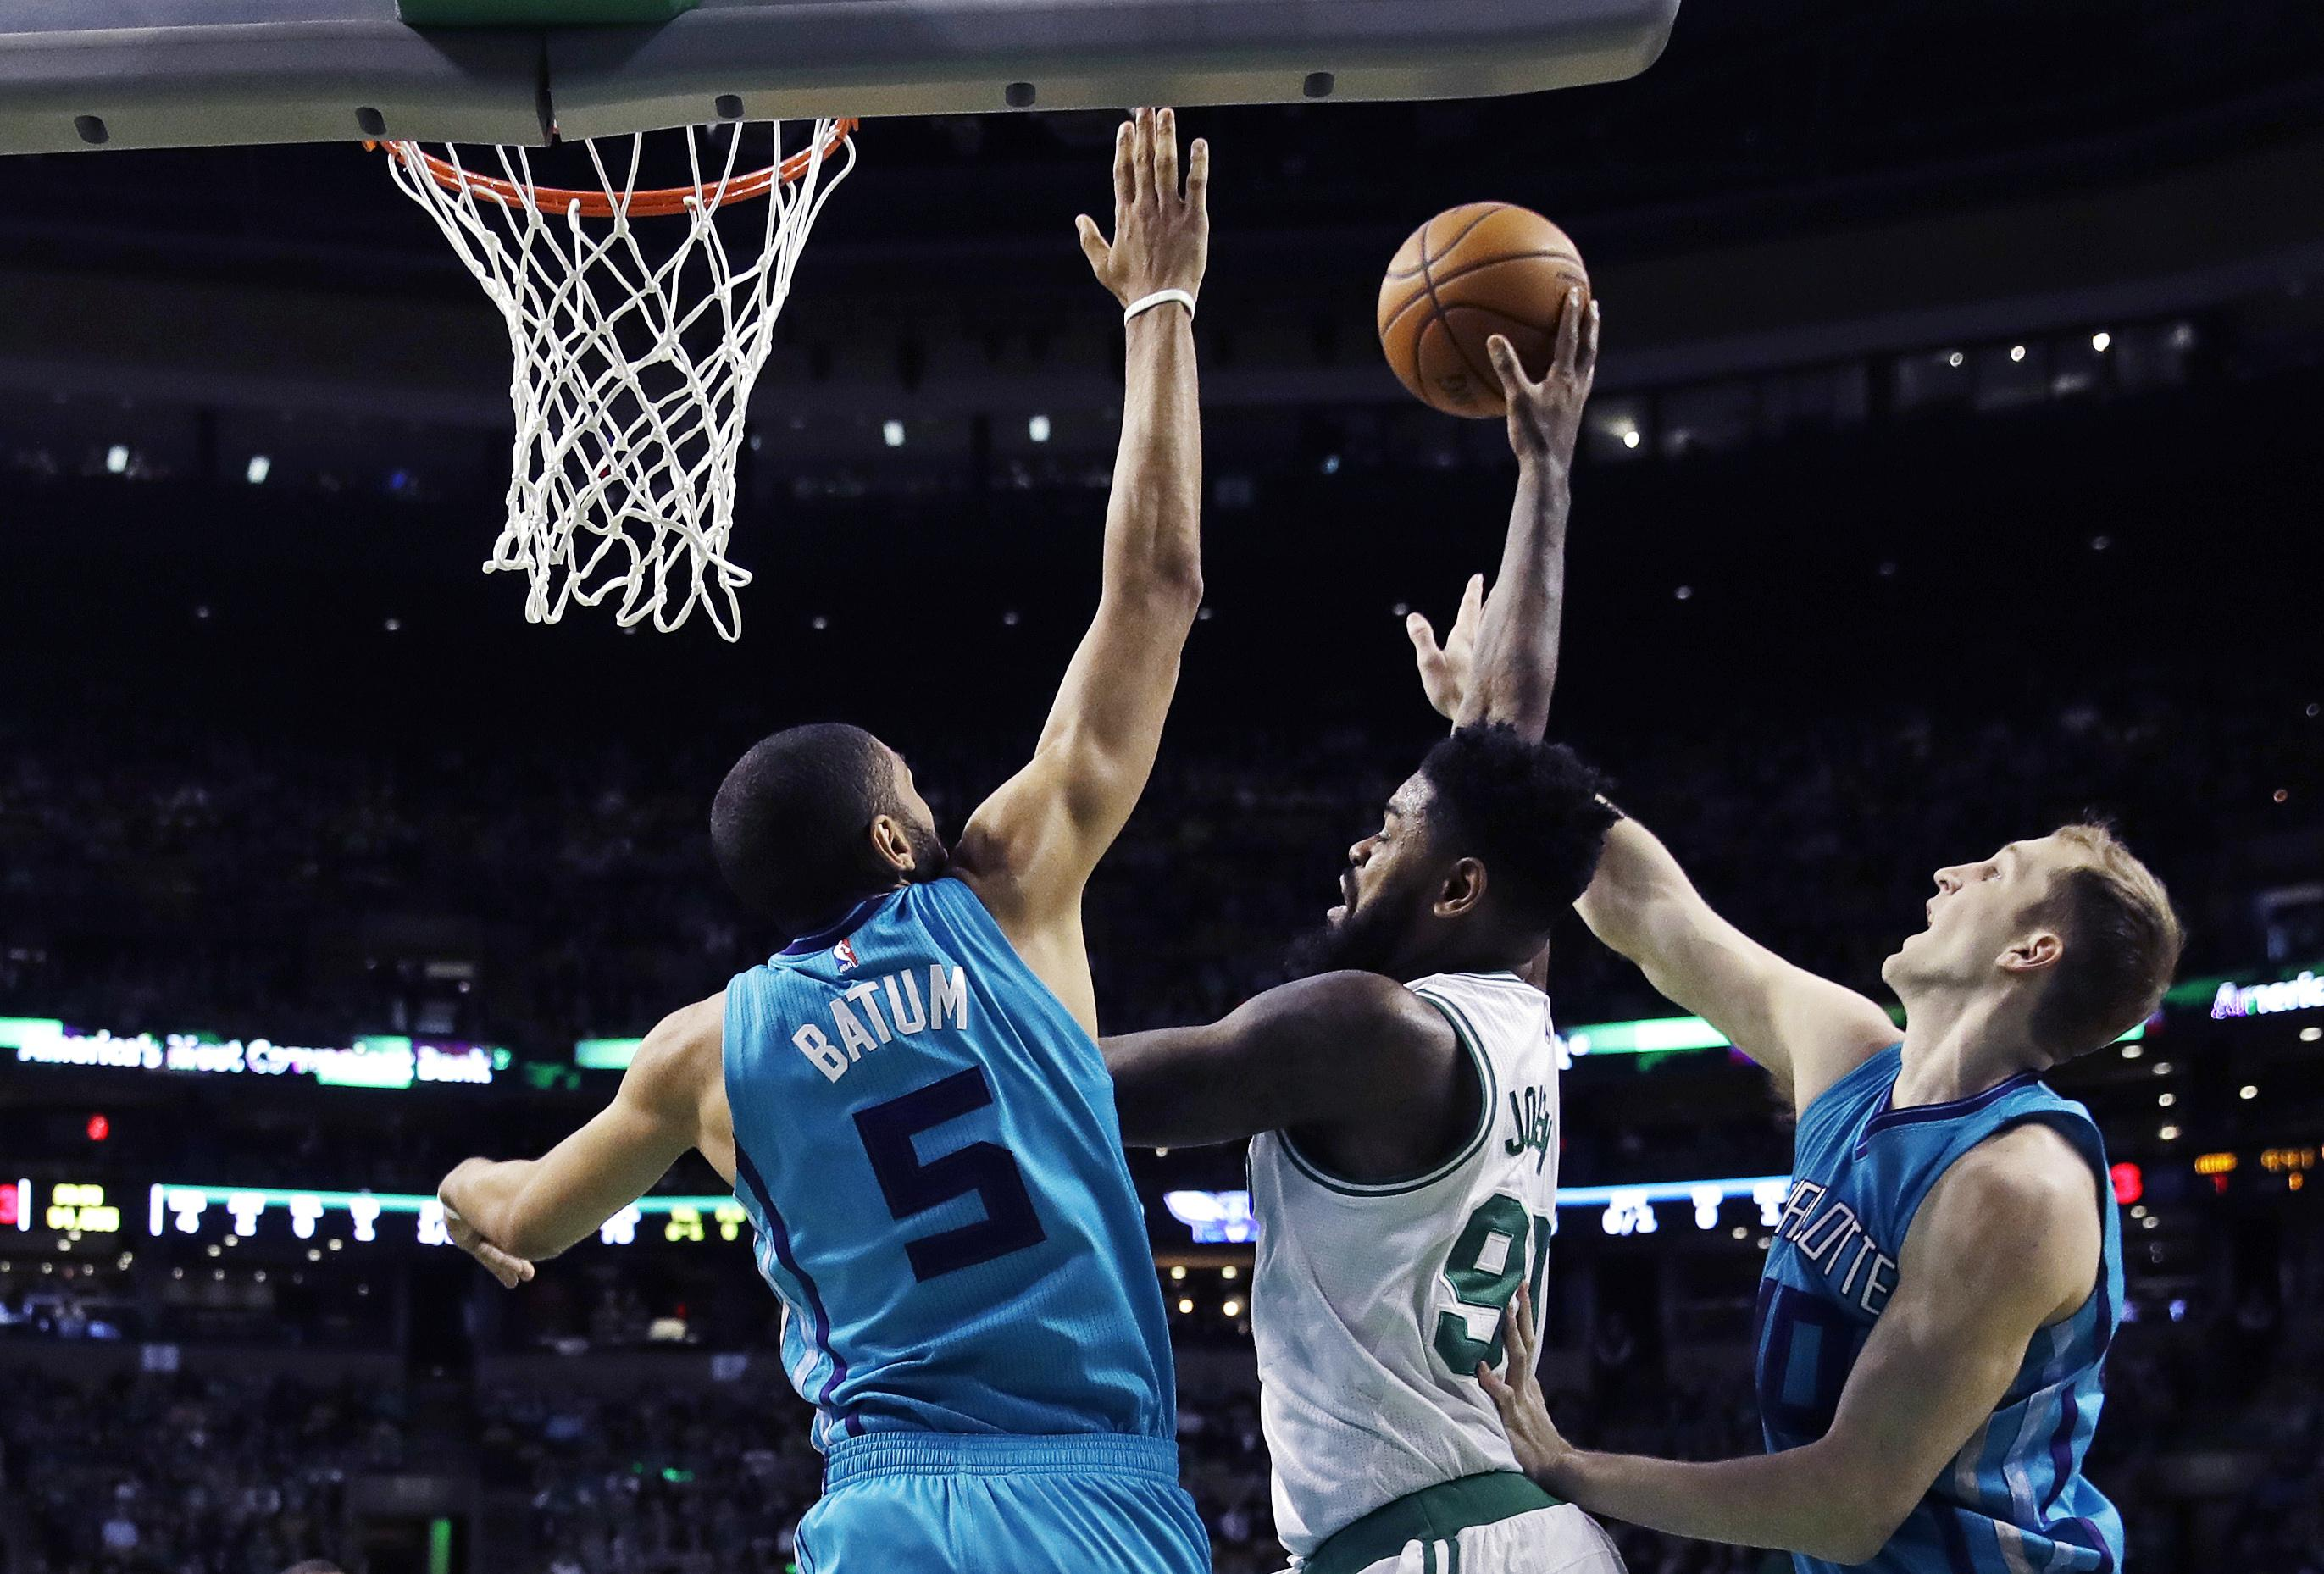 Hornets_celtics_basketball_63383